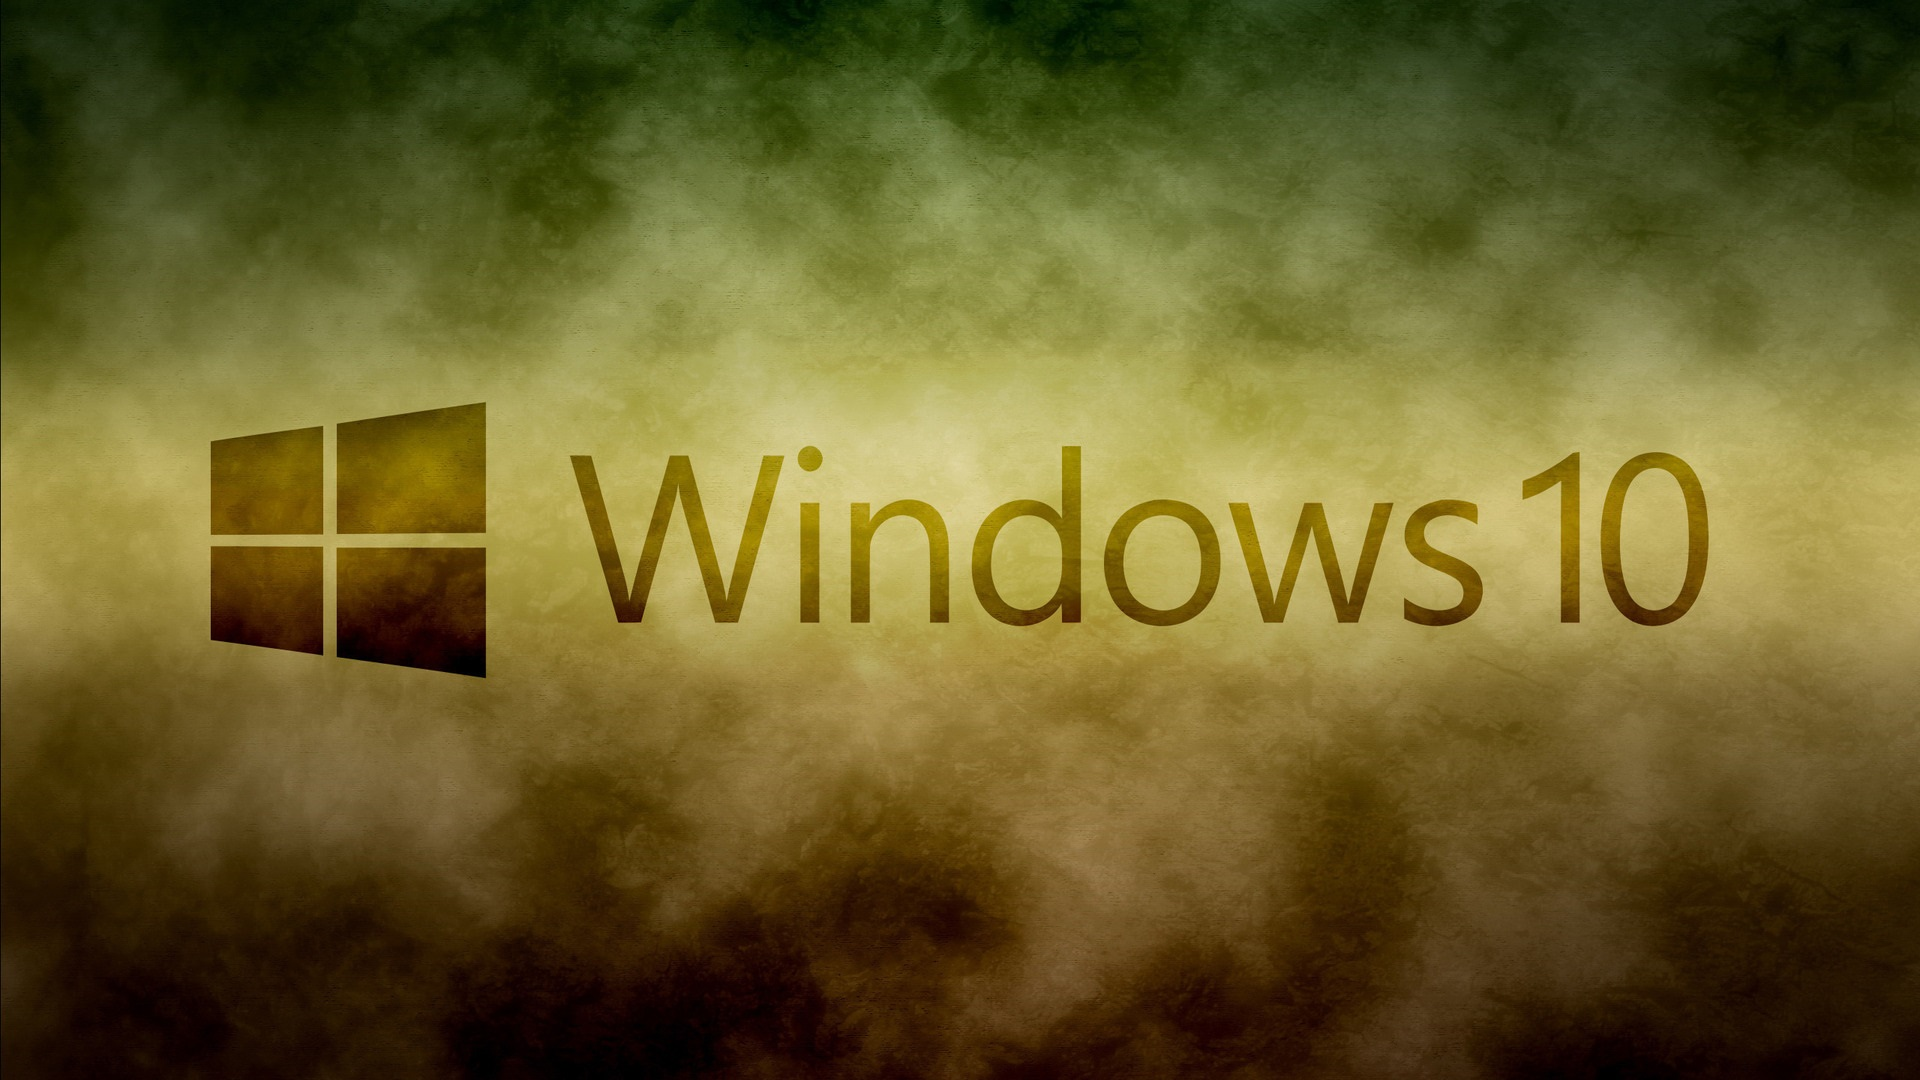 Wallpaper Windows 10 System Logo White Clouds Background